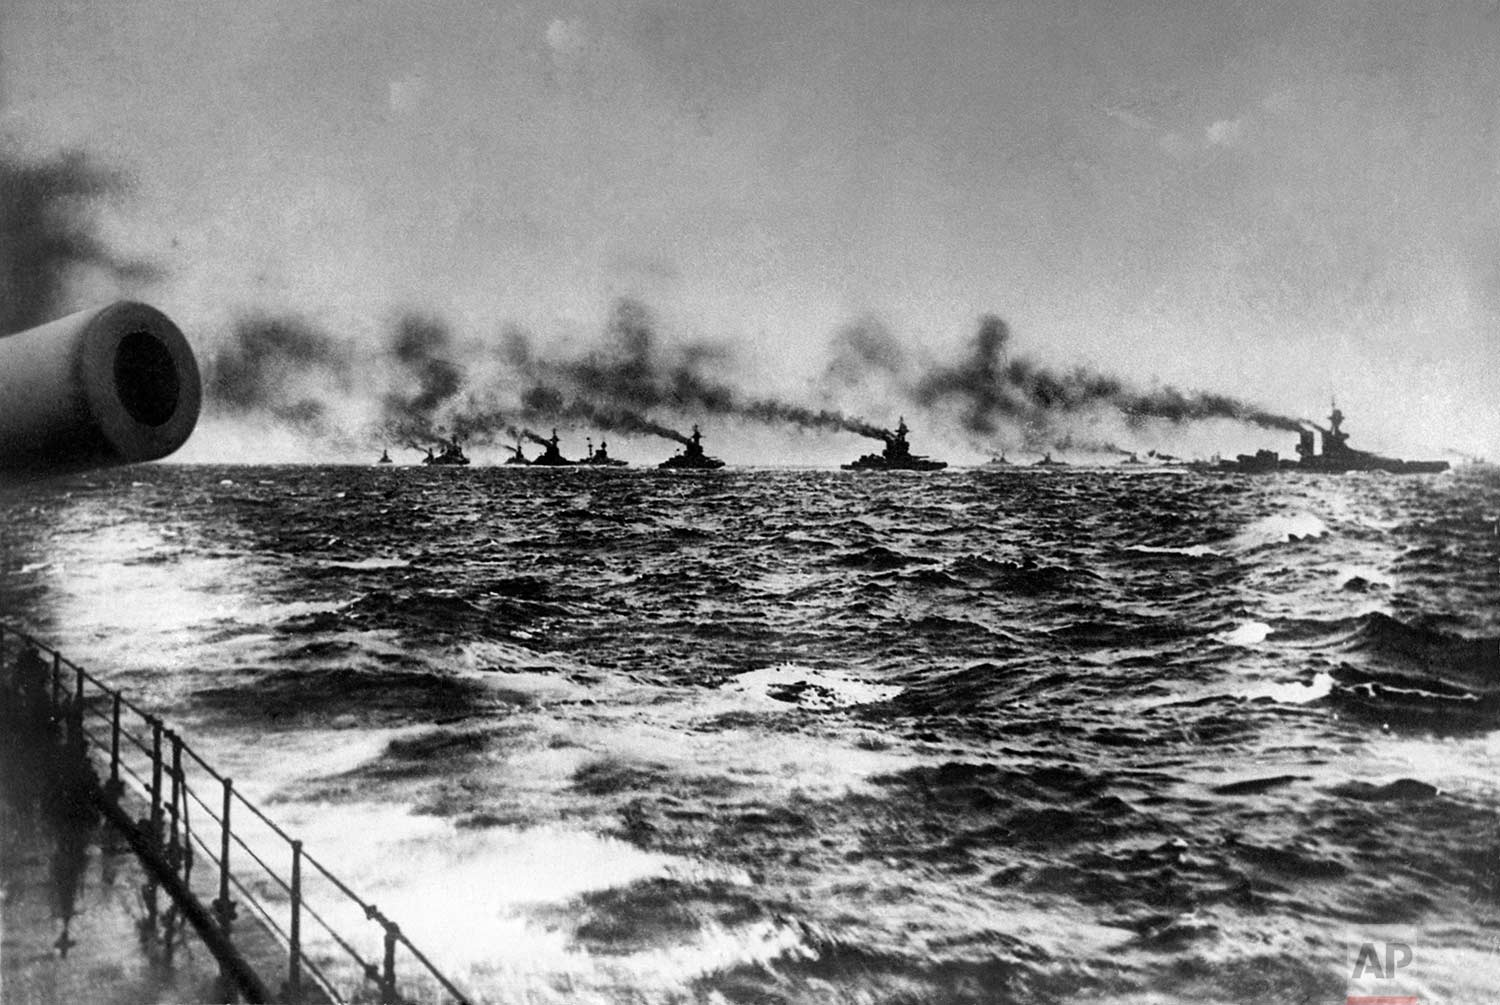 In this May 31,1916 photo, the British Grand Fleet under admiral John Jellicoe on their way to meet the Imperial German Navy's fleet for the Battle of Jutland in the North Sea. (AP Photo)